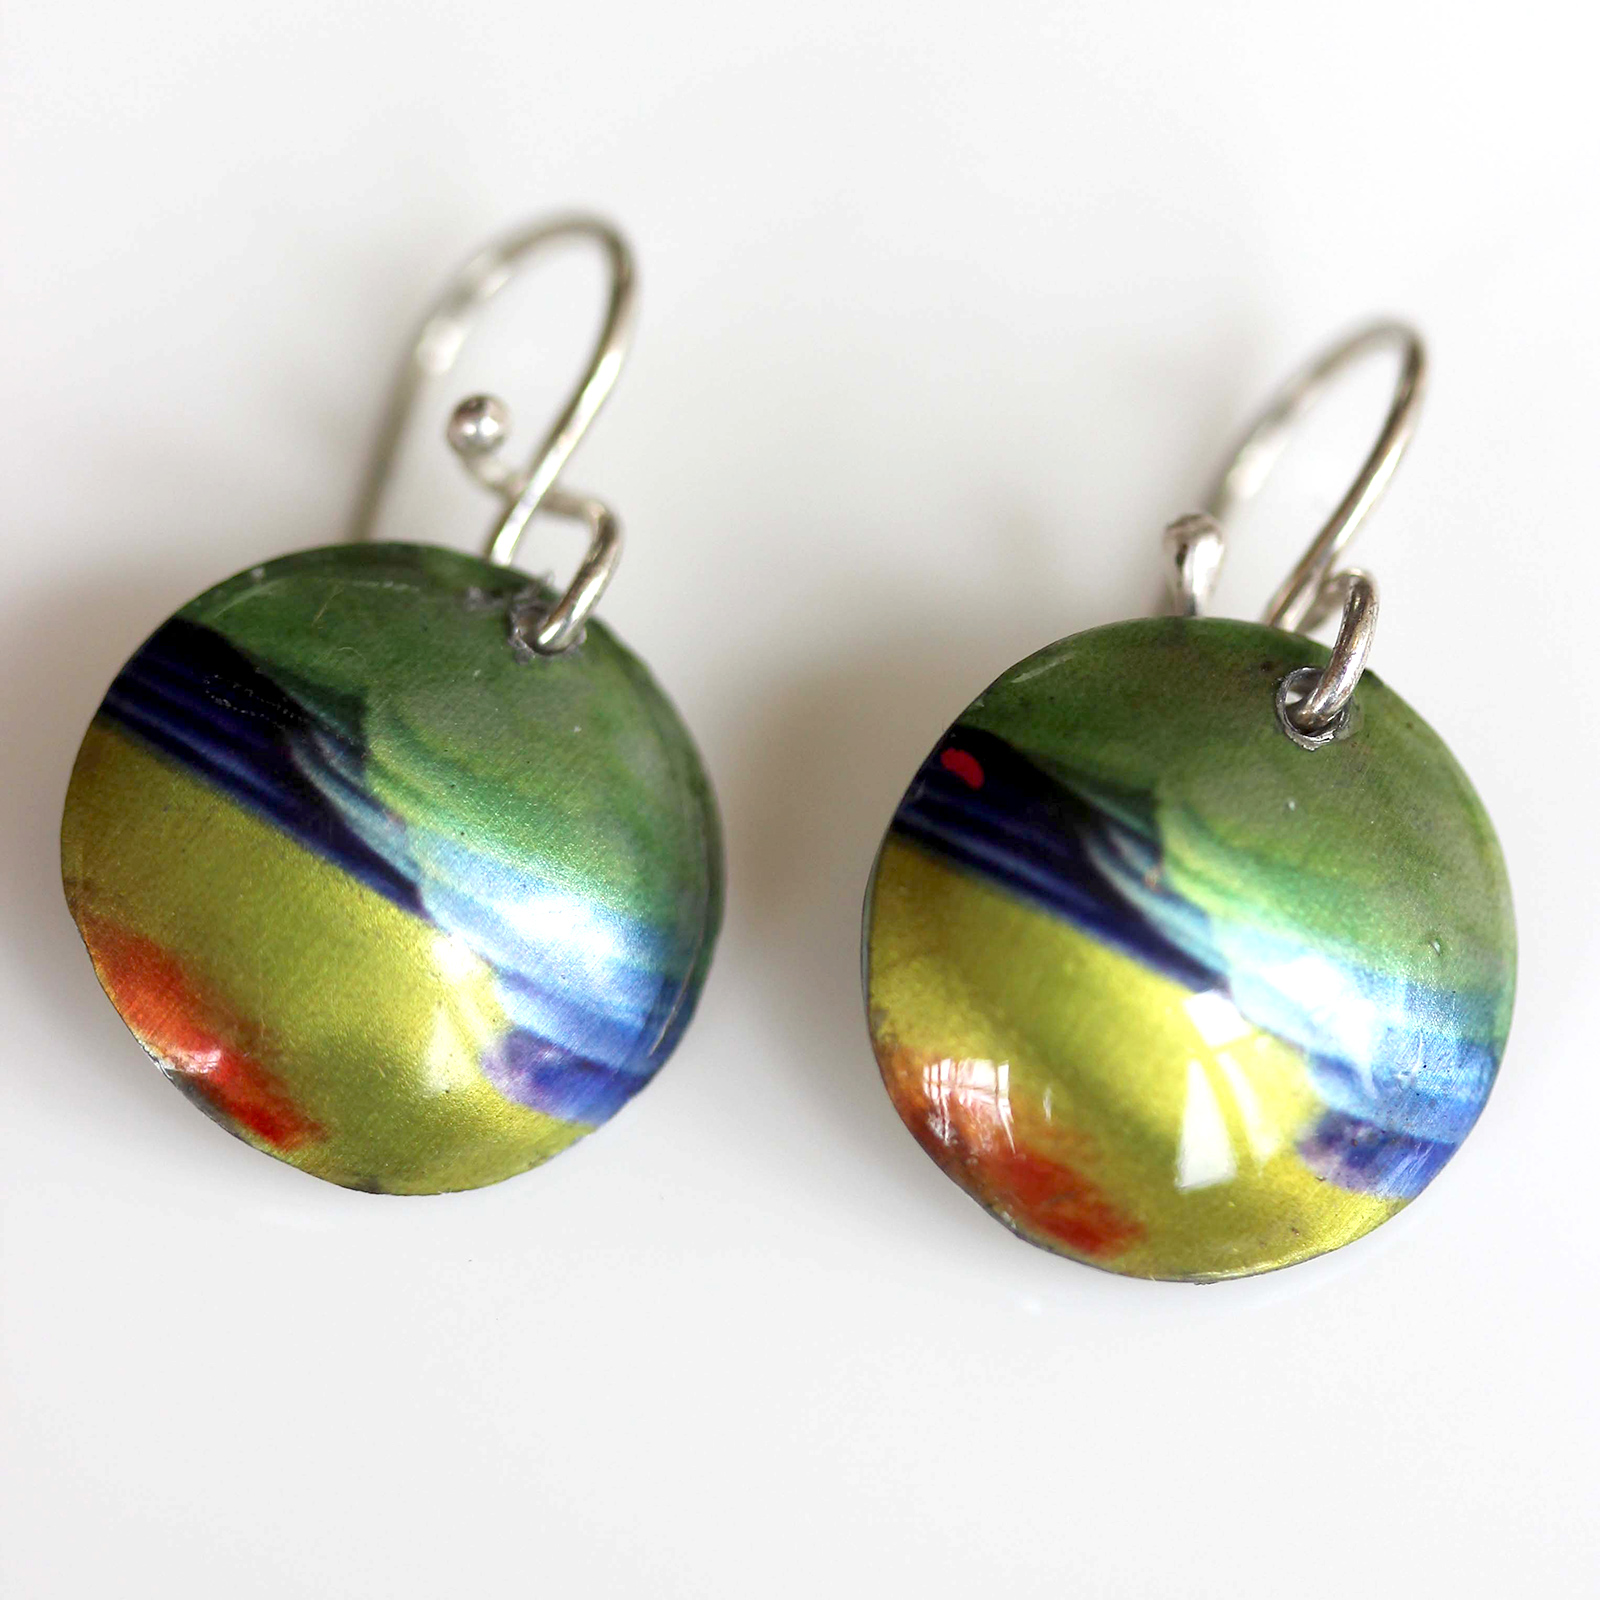 Orange-bellied parrot earrings